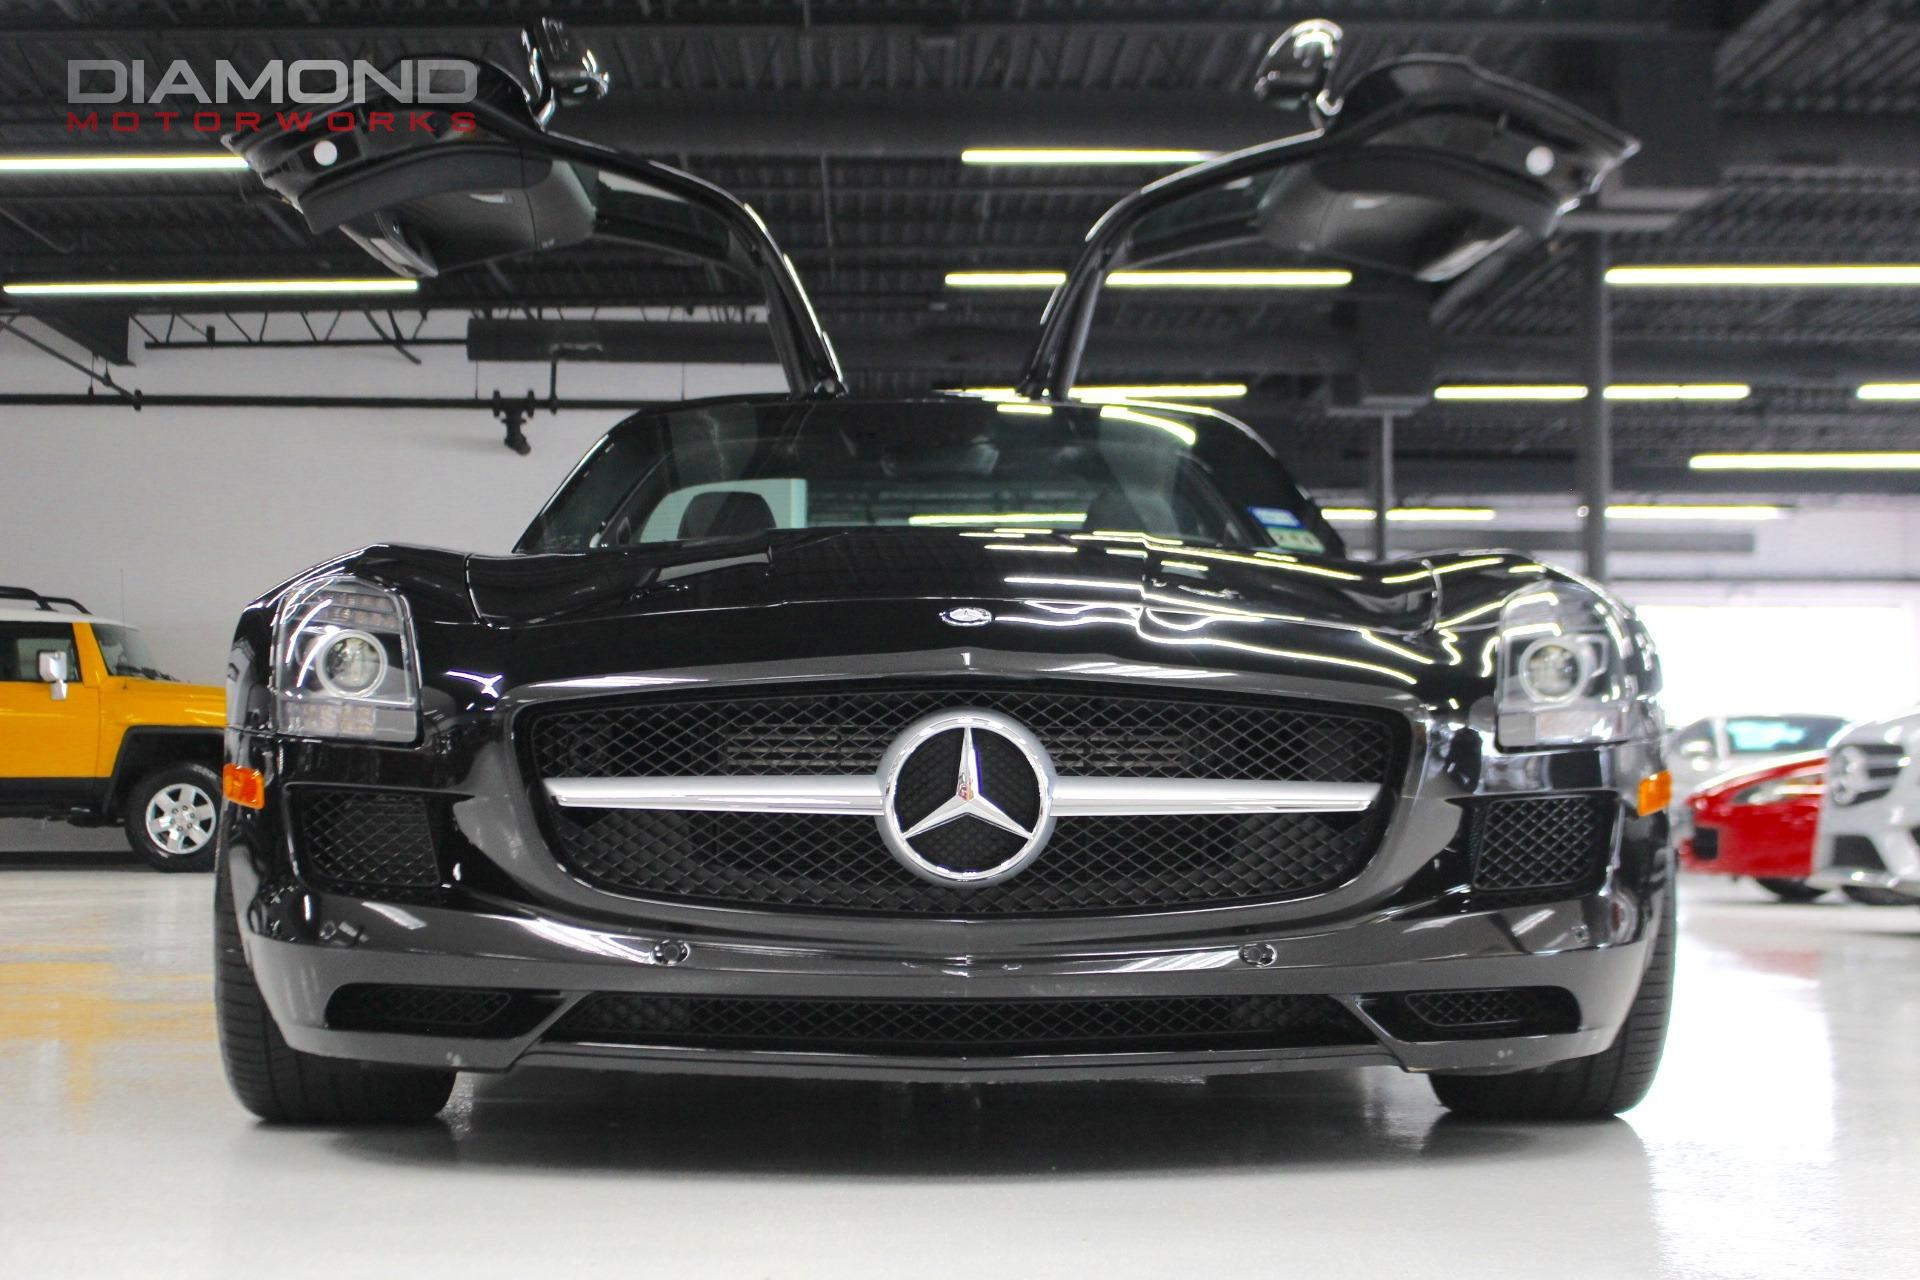 2012 mercedes benz sls amg gullwing coupe stock 006389 for sale near lisle il il mercedes. Black Bedroom Furniture Sets. Home Design Ideas